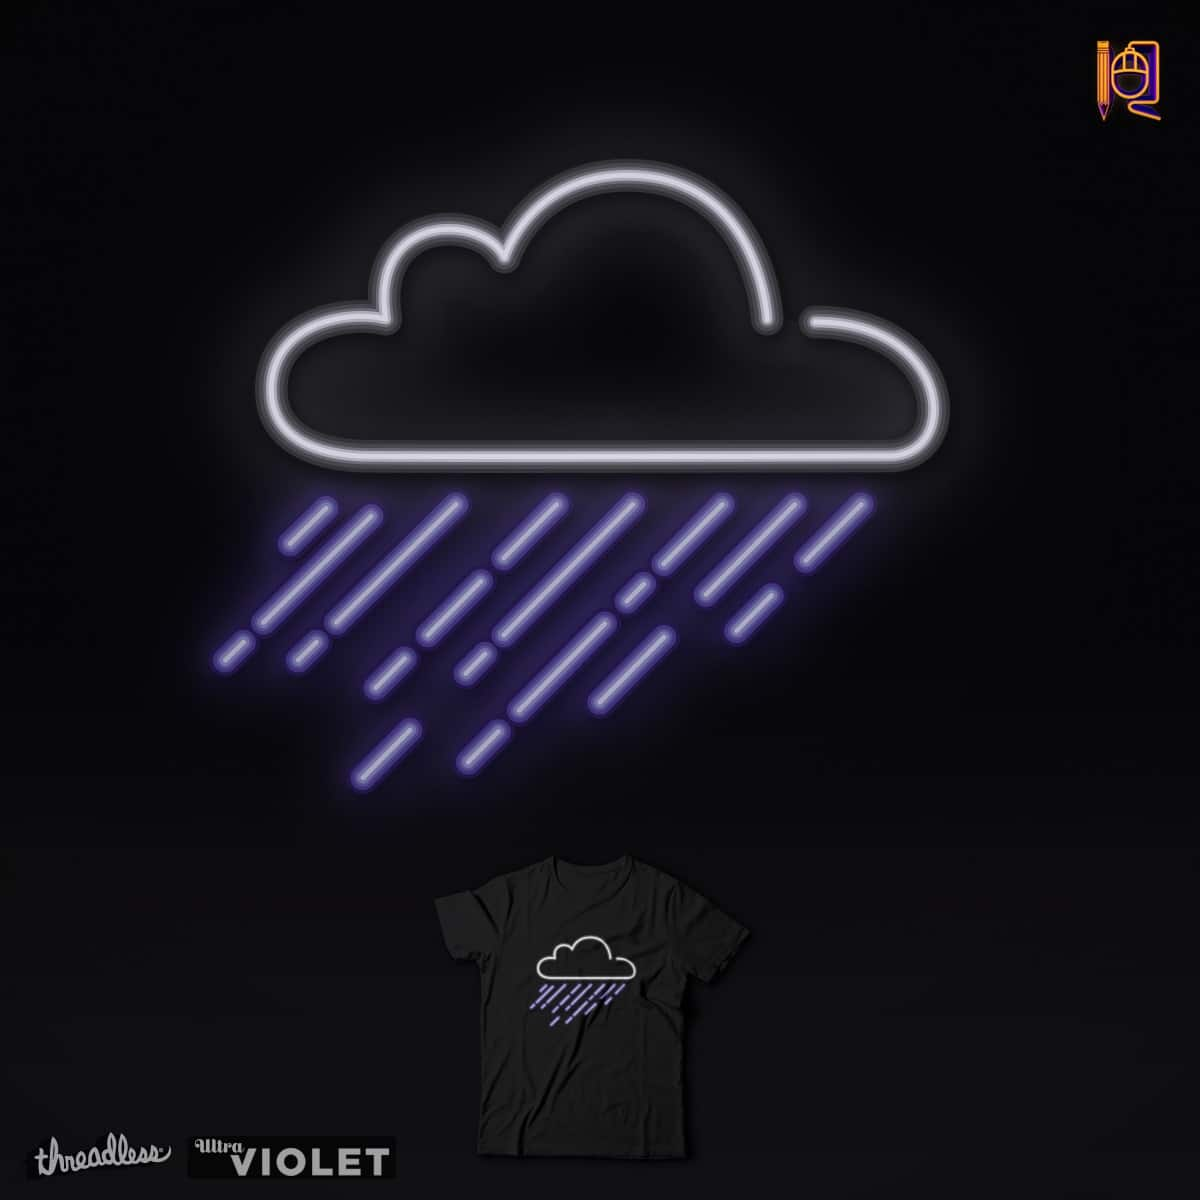 Purple rain by rodrigobhz on Threadless